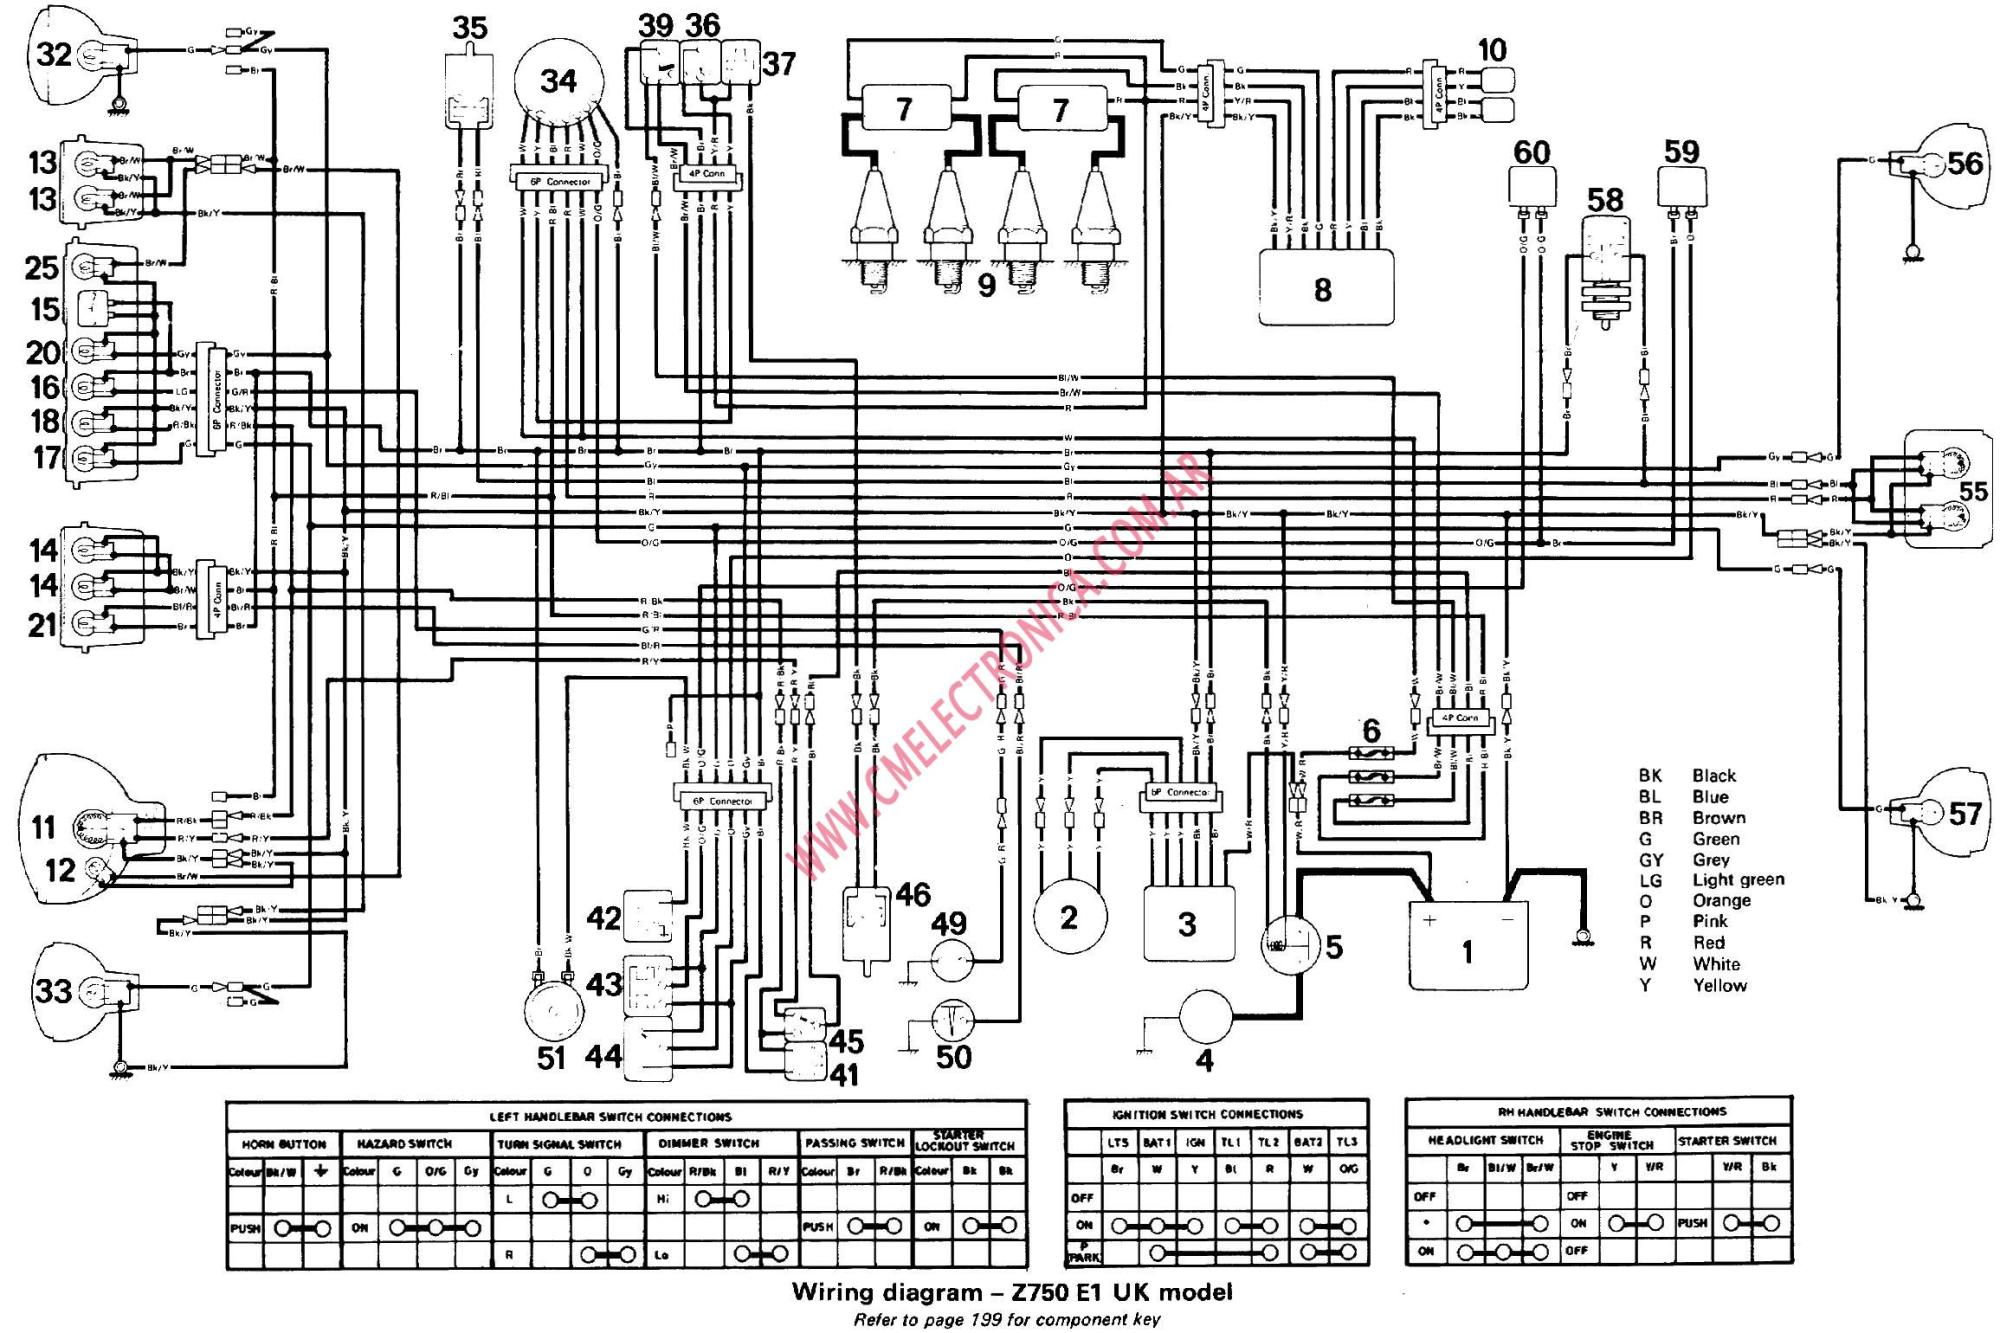 hight resolution of kawasaki 750 wiring diagram wiring diagram advance kawasaki 750 jet ski wiring diagram kawasaki 750 wiring diagram